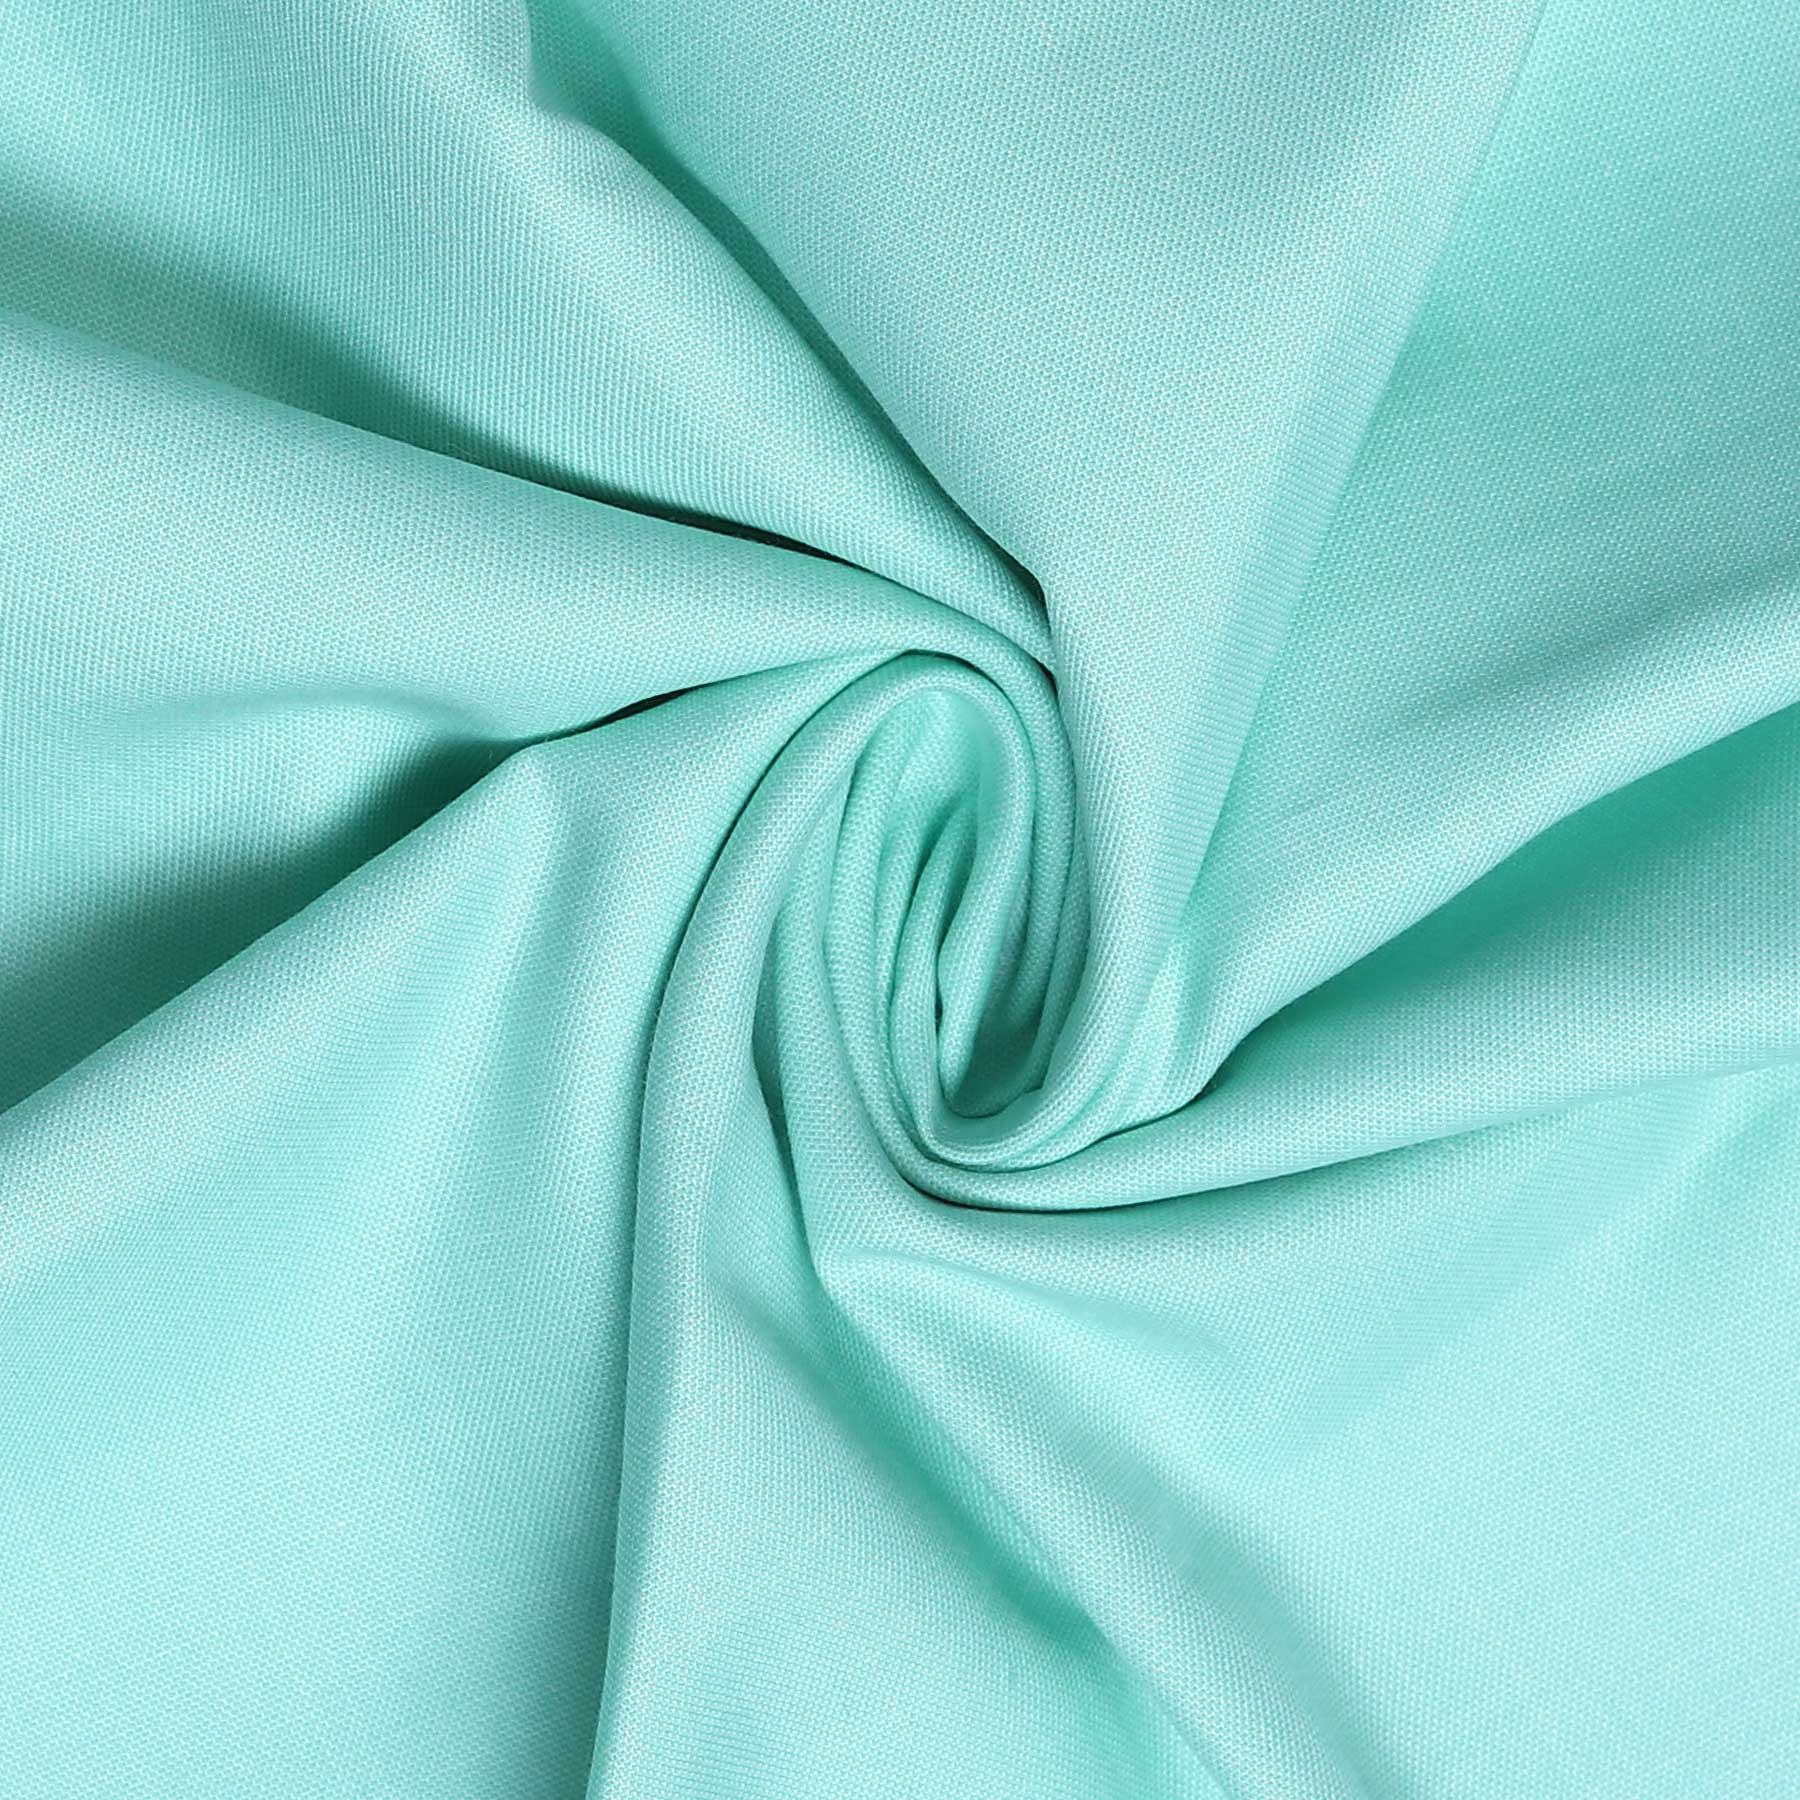 Sea Green Plain Men's Cotton Corporate Workwear Unstitched Shirt Fabrics